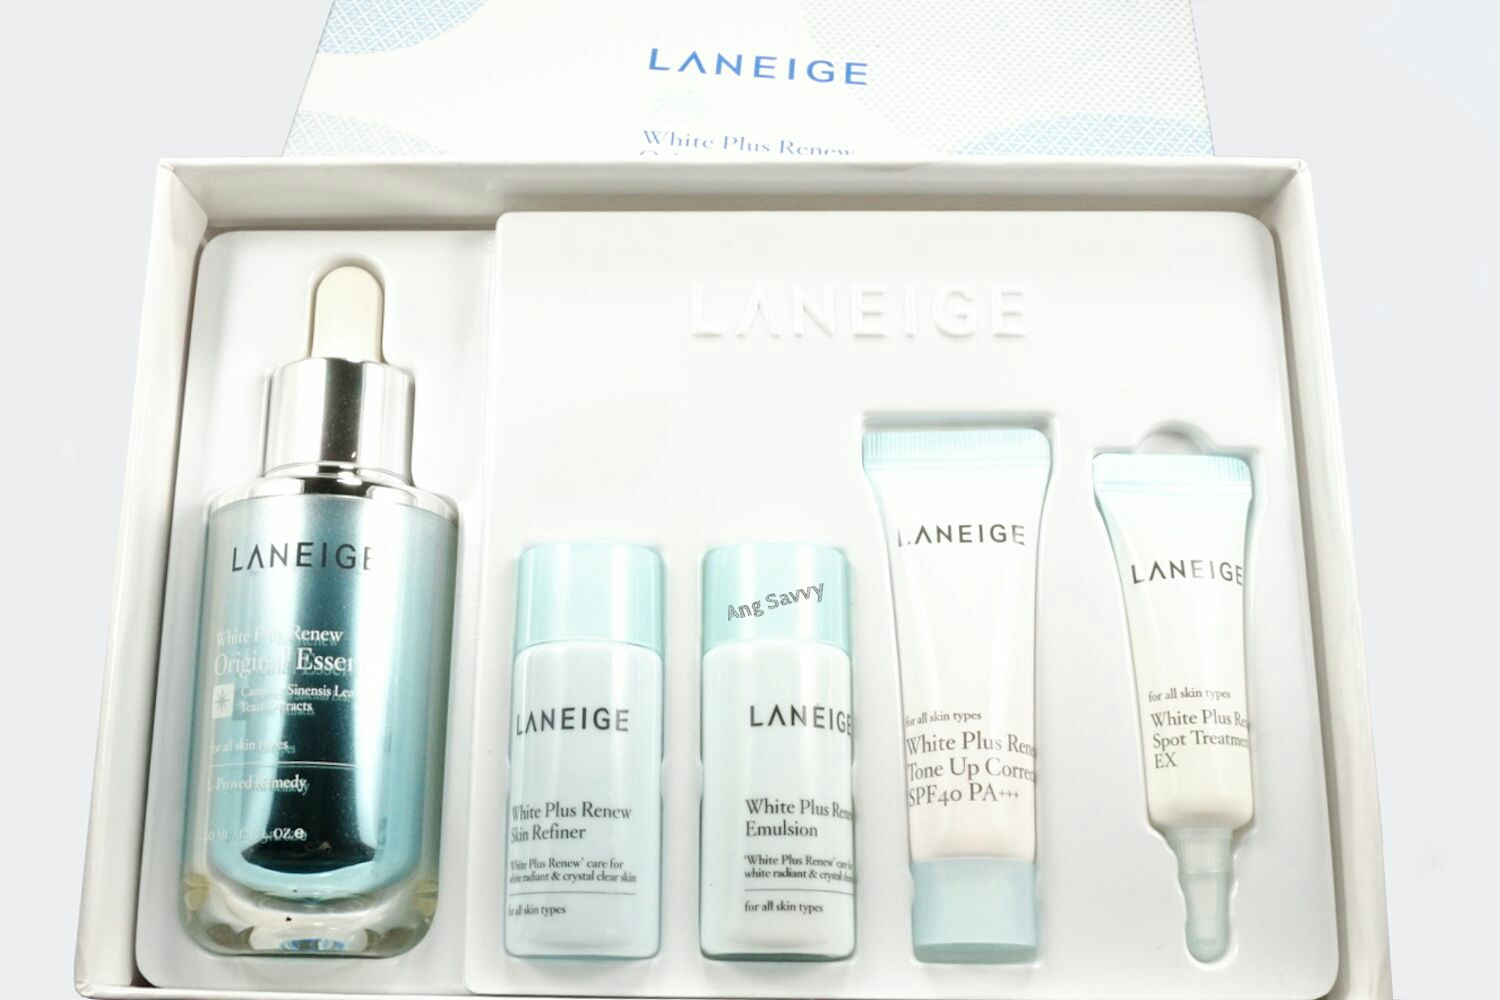 LANEIGE Sparkling Makeup Collection Launch